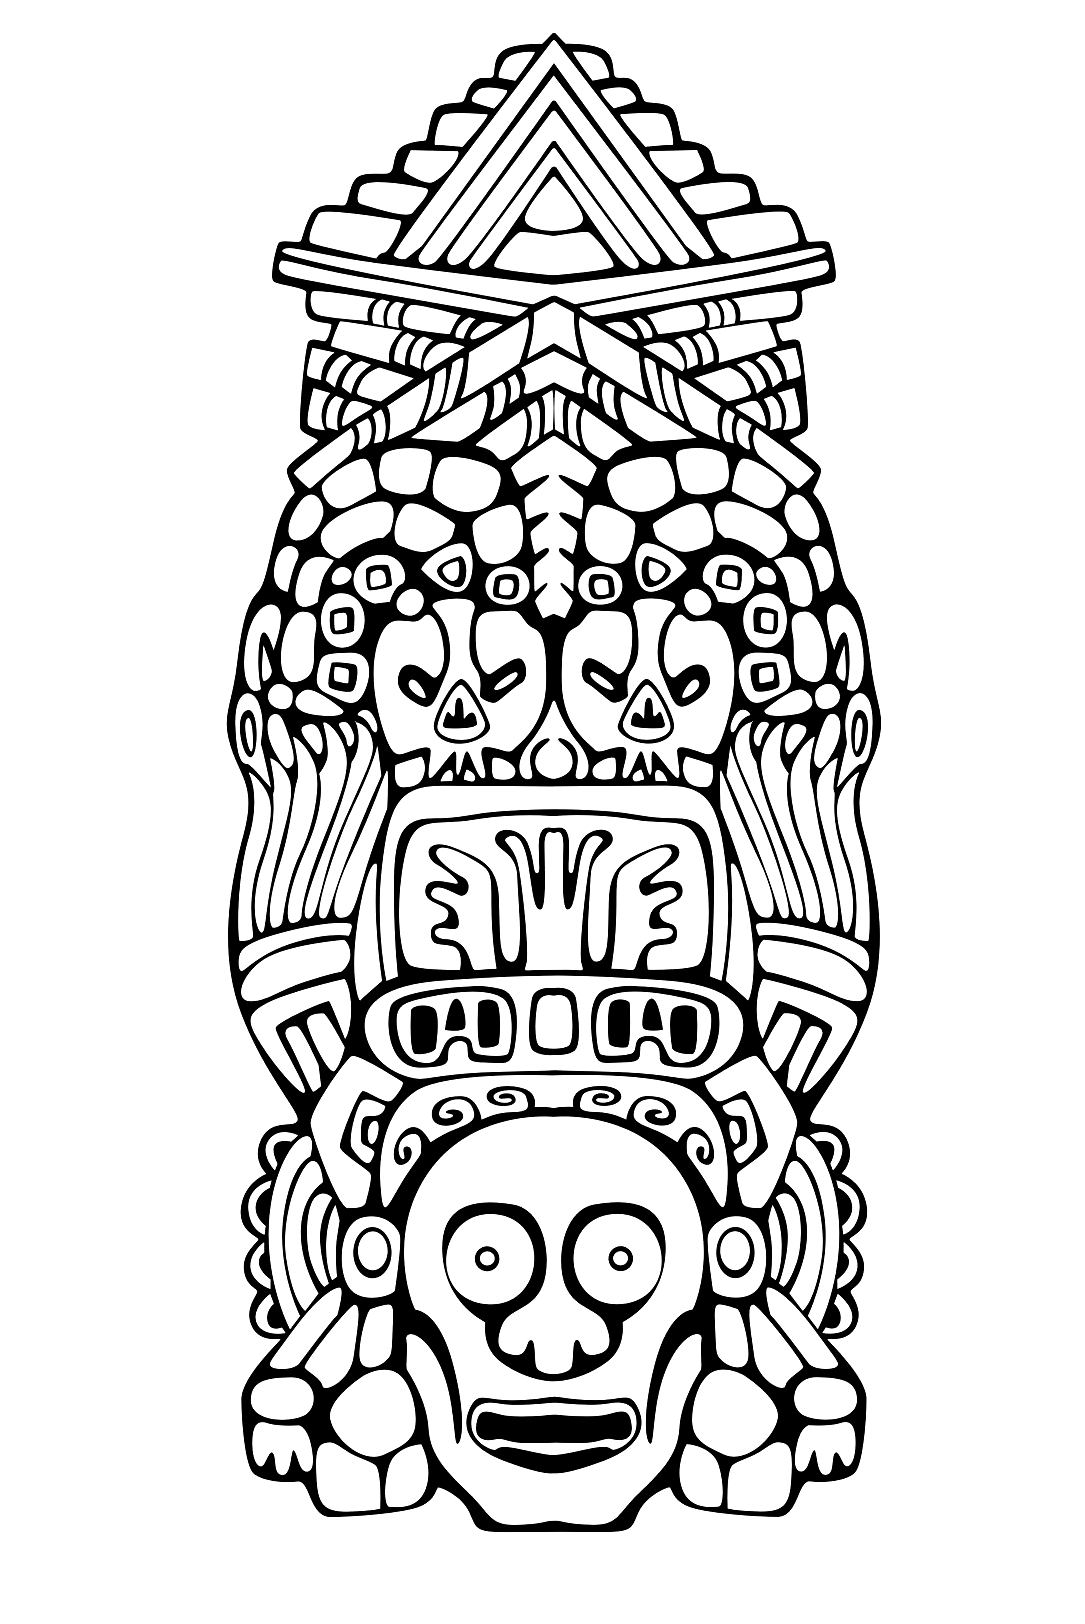 inca coloring sheets inca coloring pages at getcoloringscom free printable sheets inca coloring